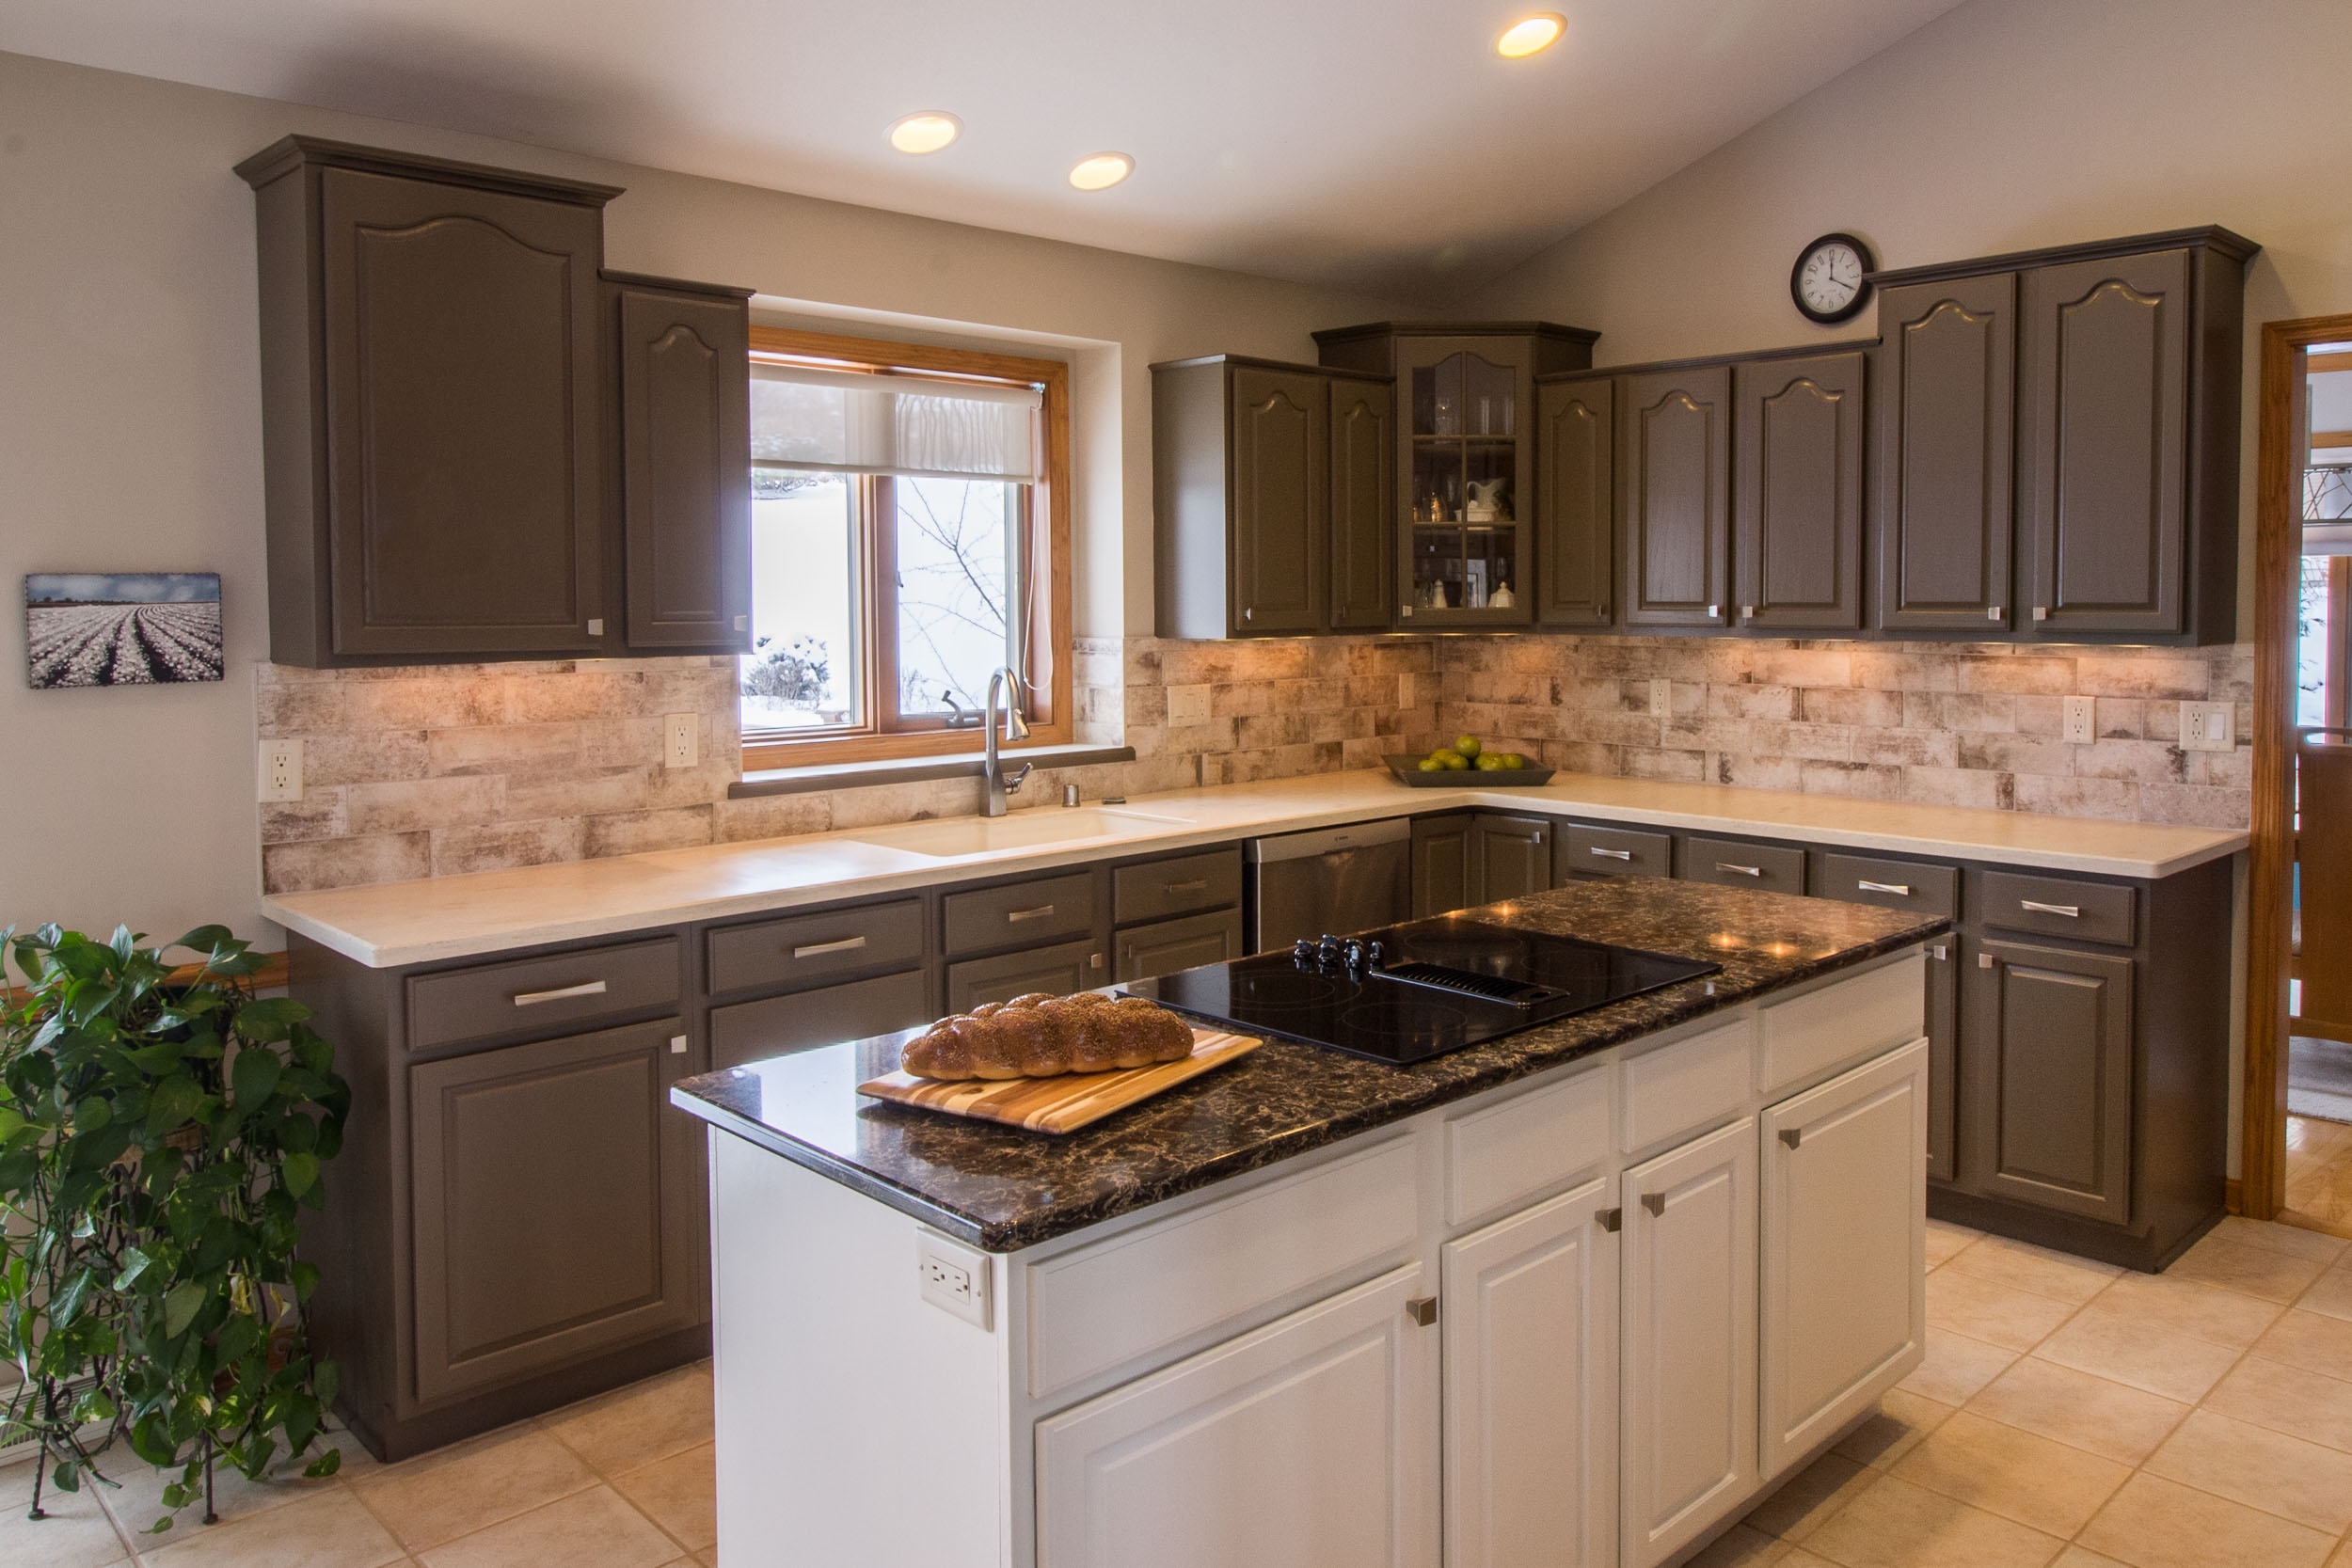 Professional Whole House Remodel, DeForest, WI